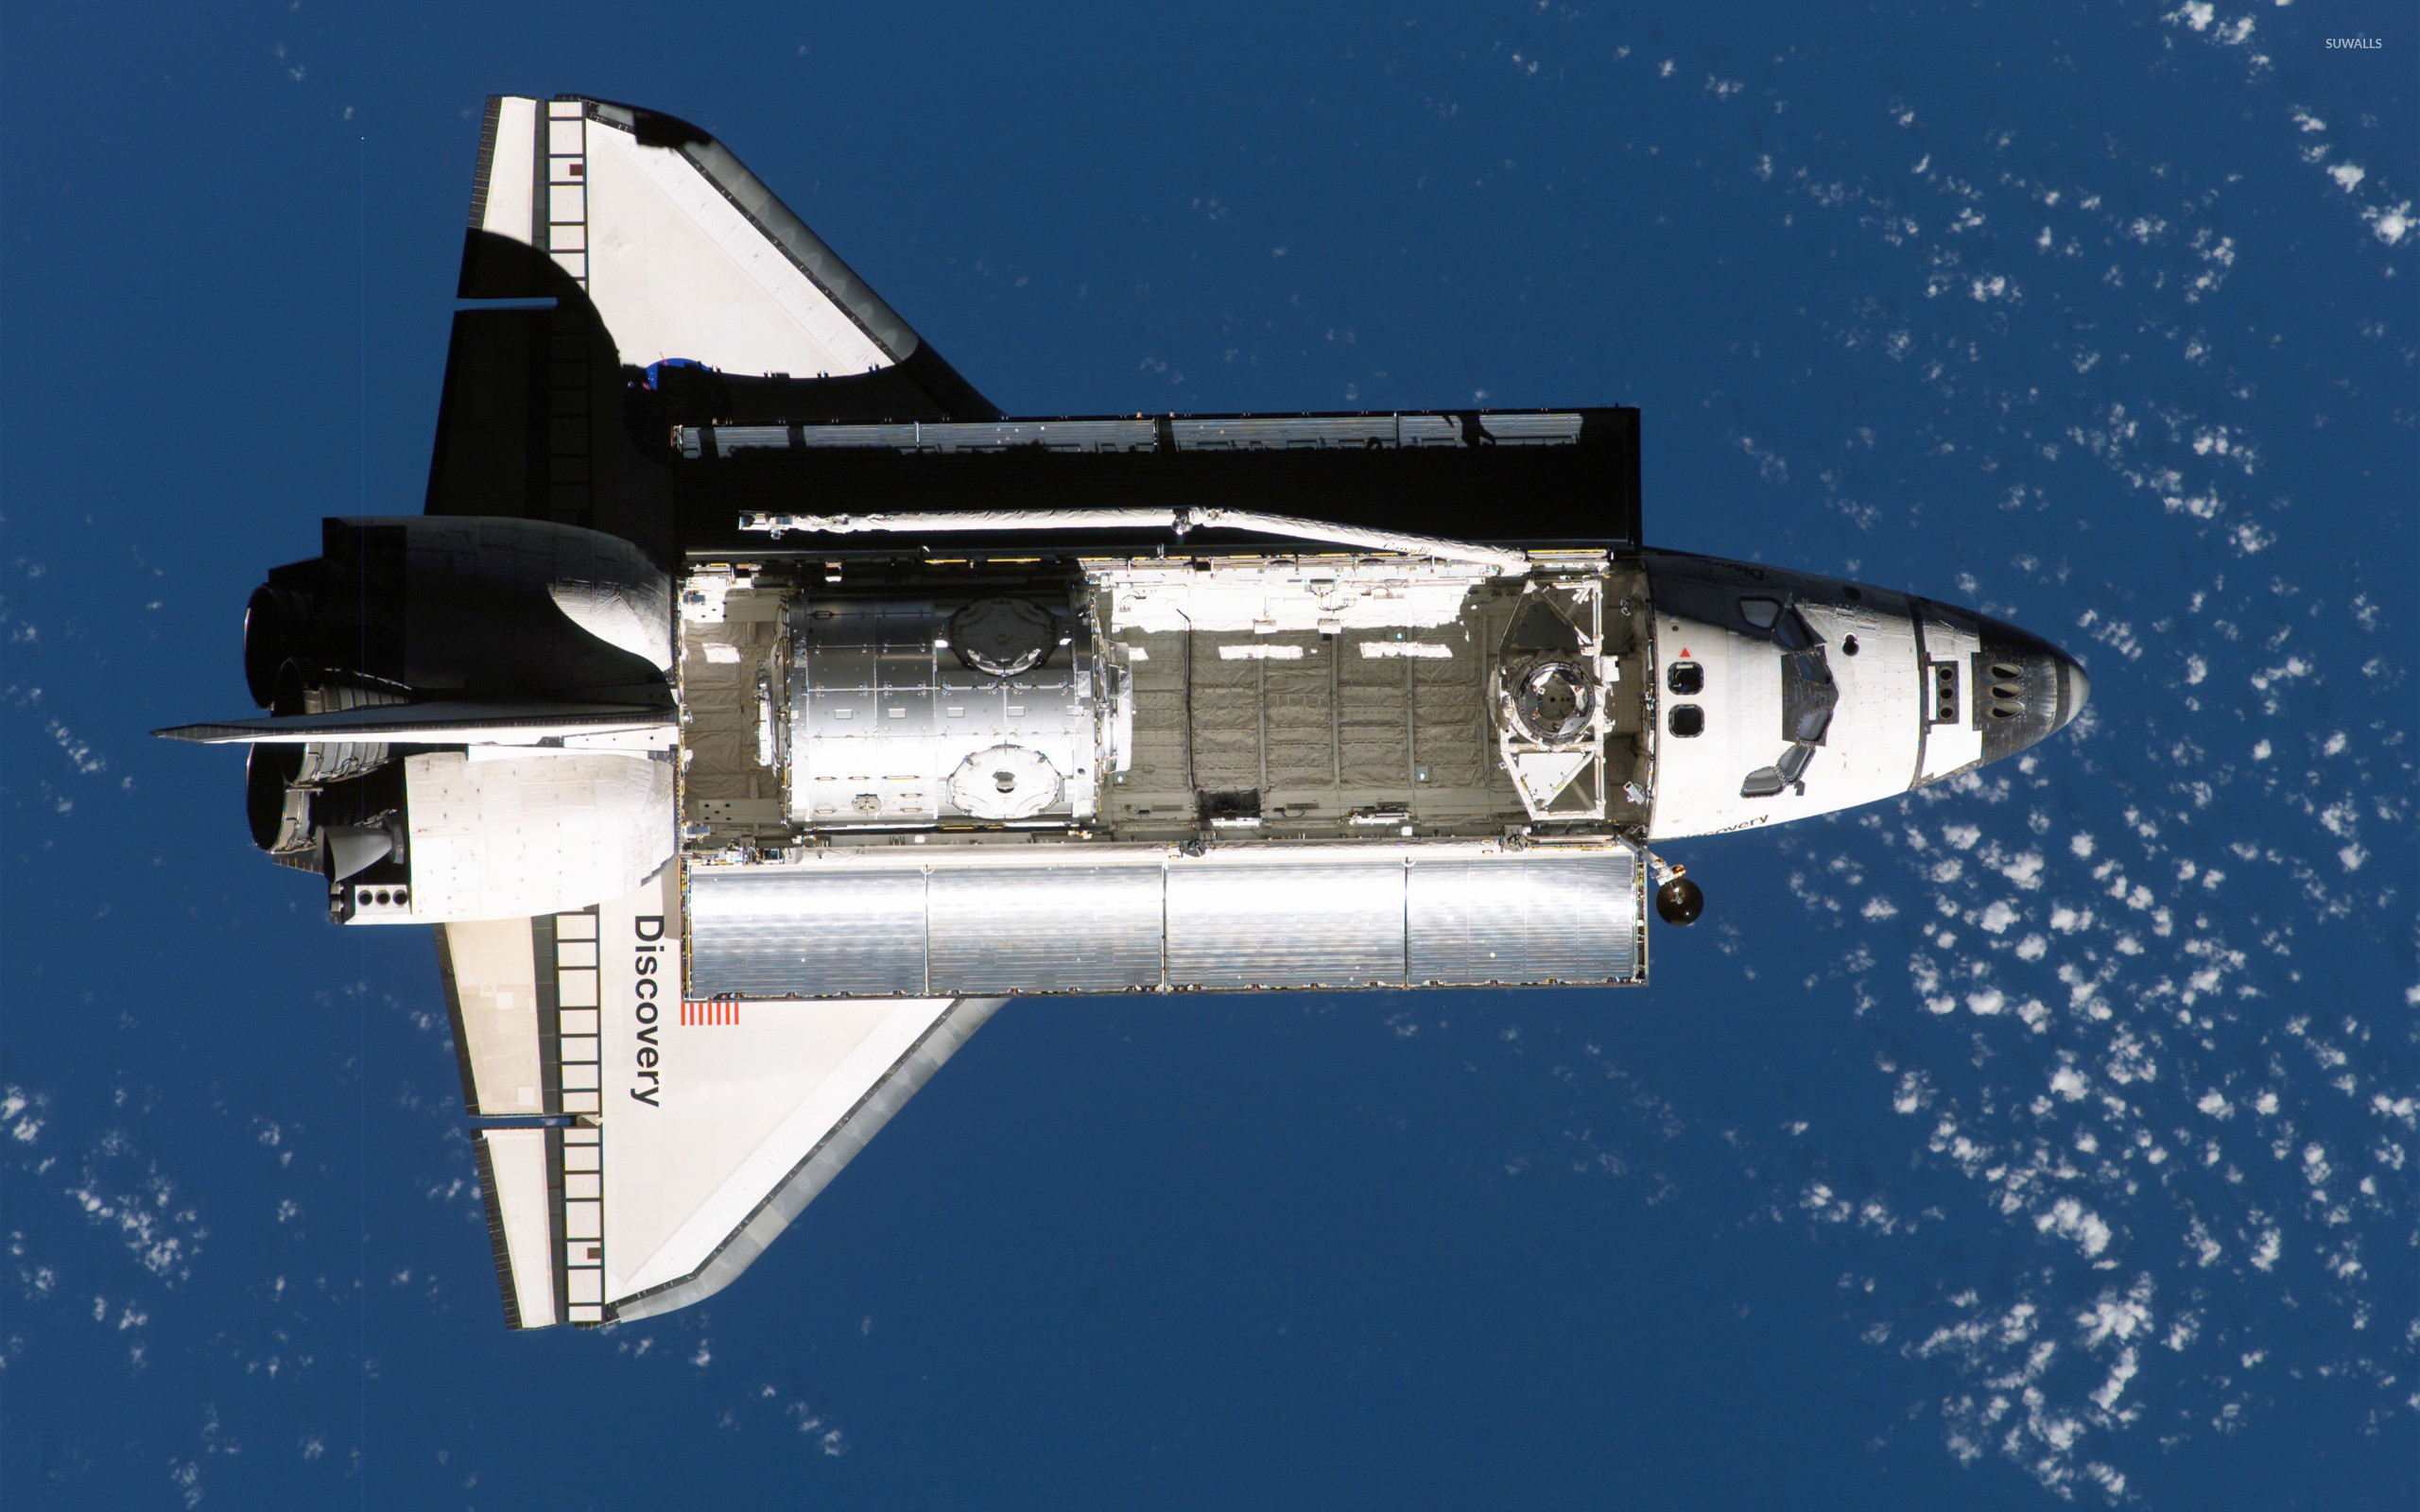 space shuttle discovery - HD2560×1600